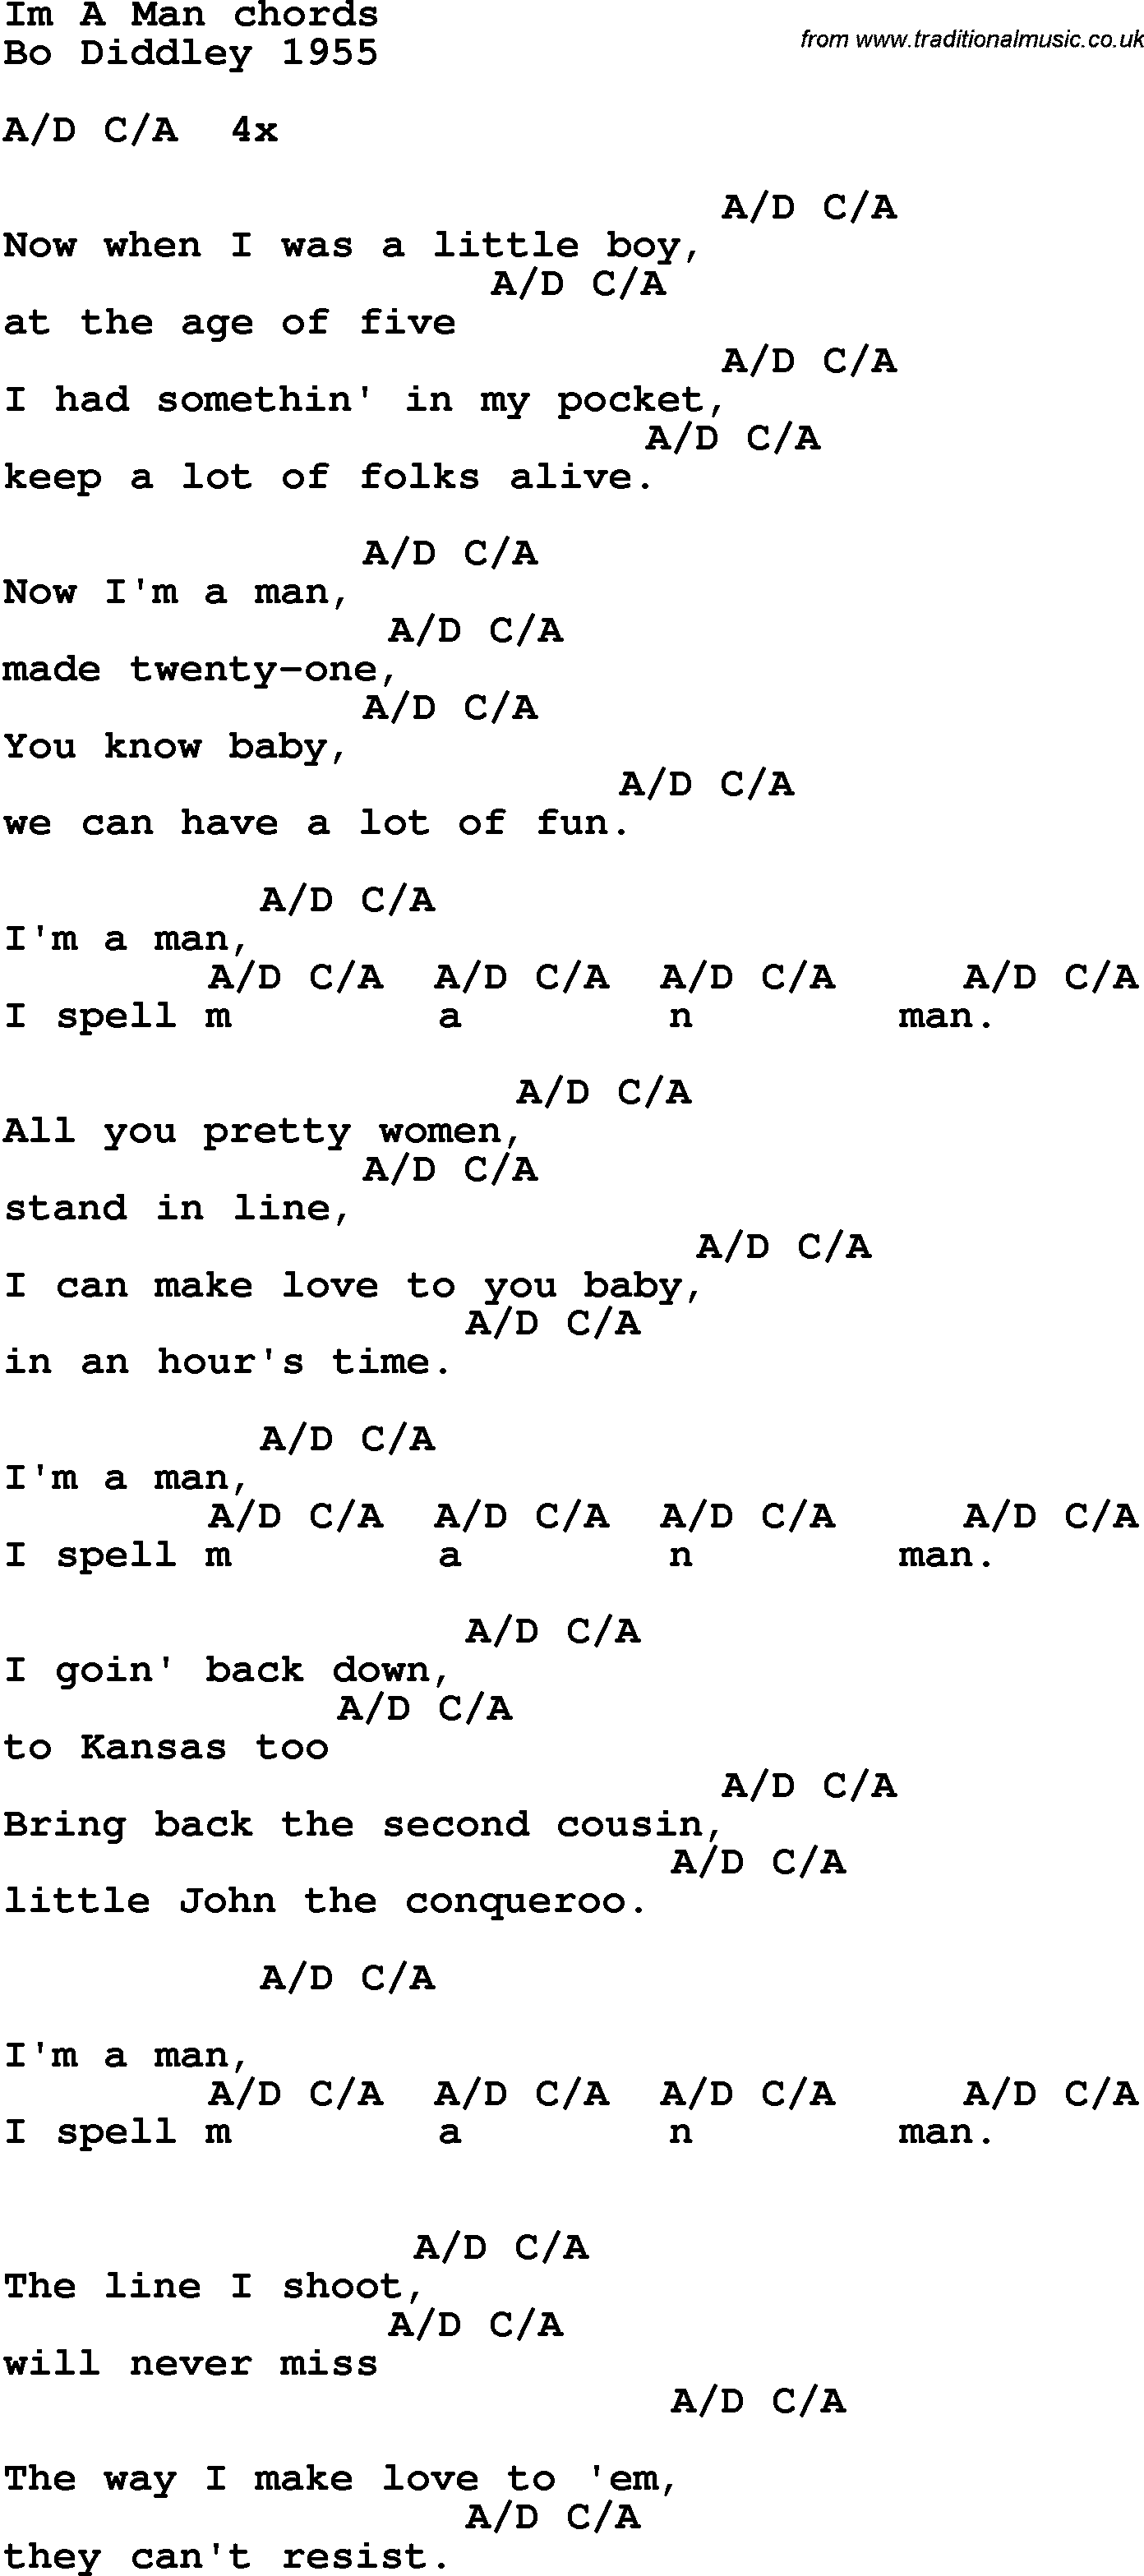 Song Lyrics With Guitar Chords For Im A Man Bo Diddley 1955